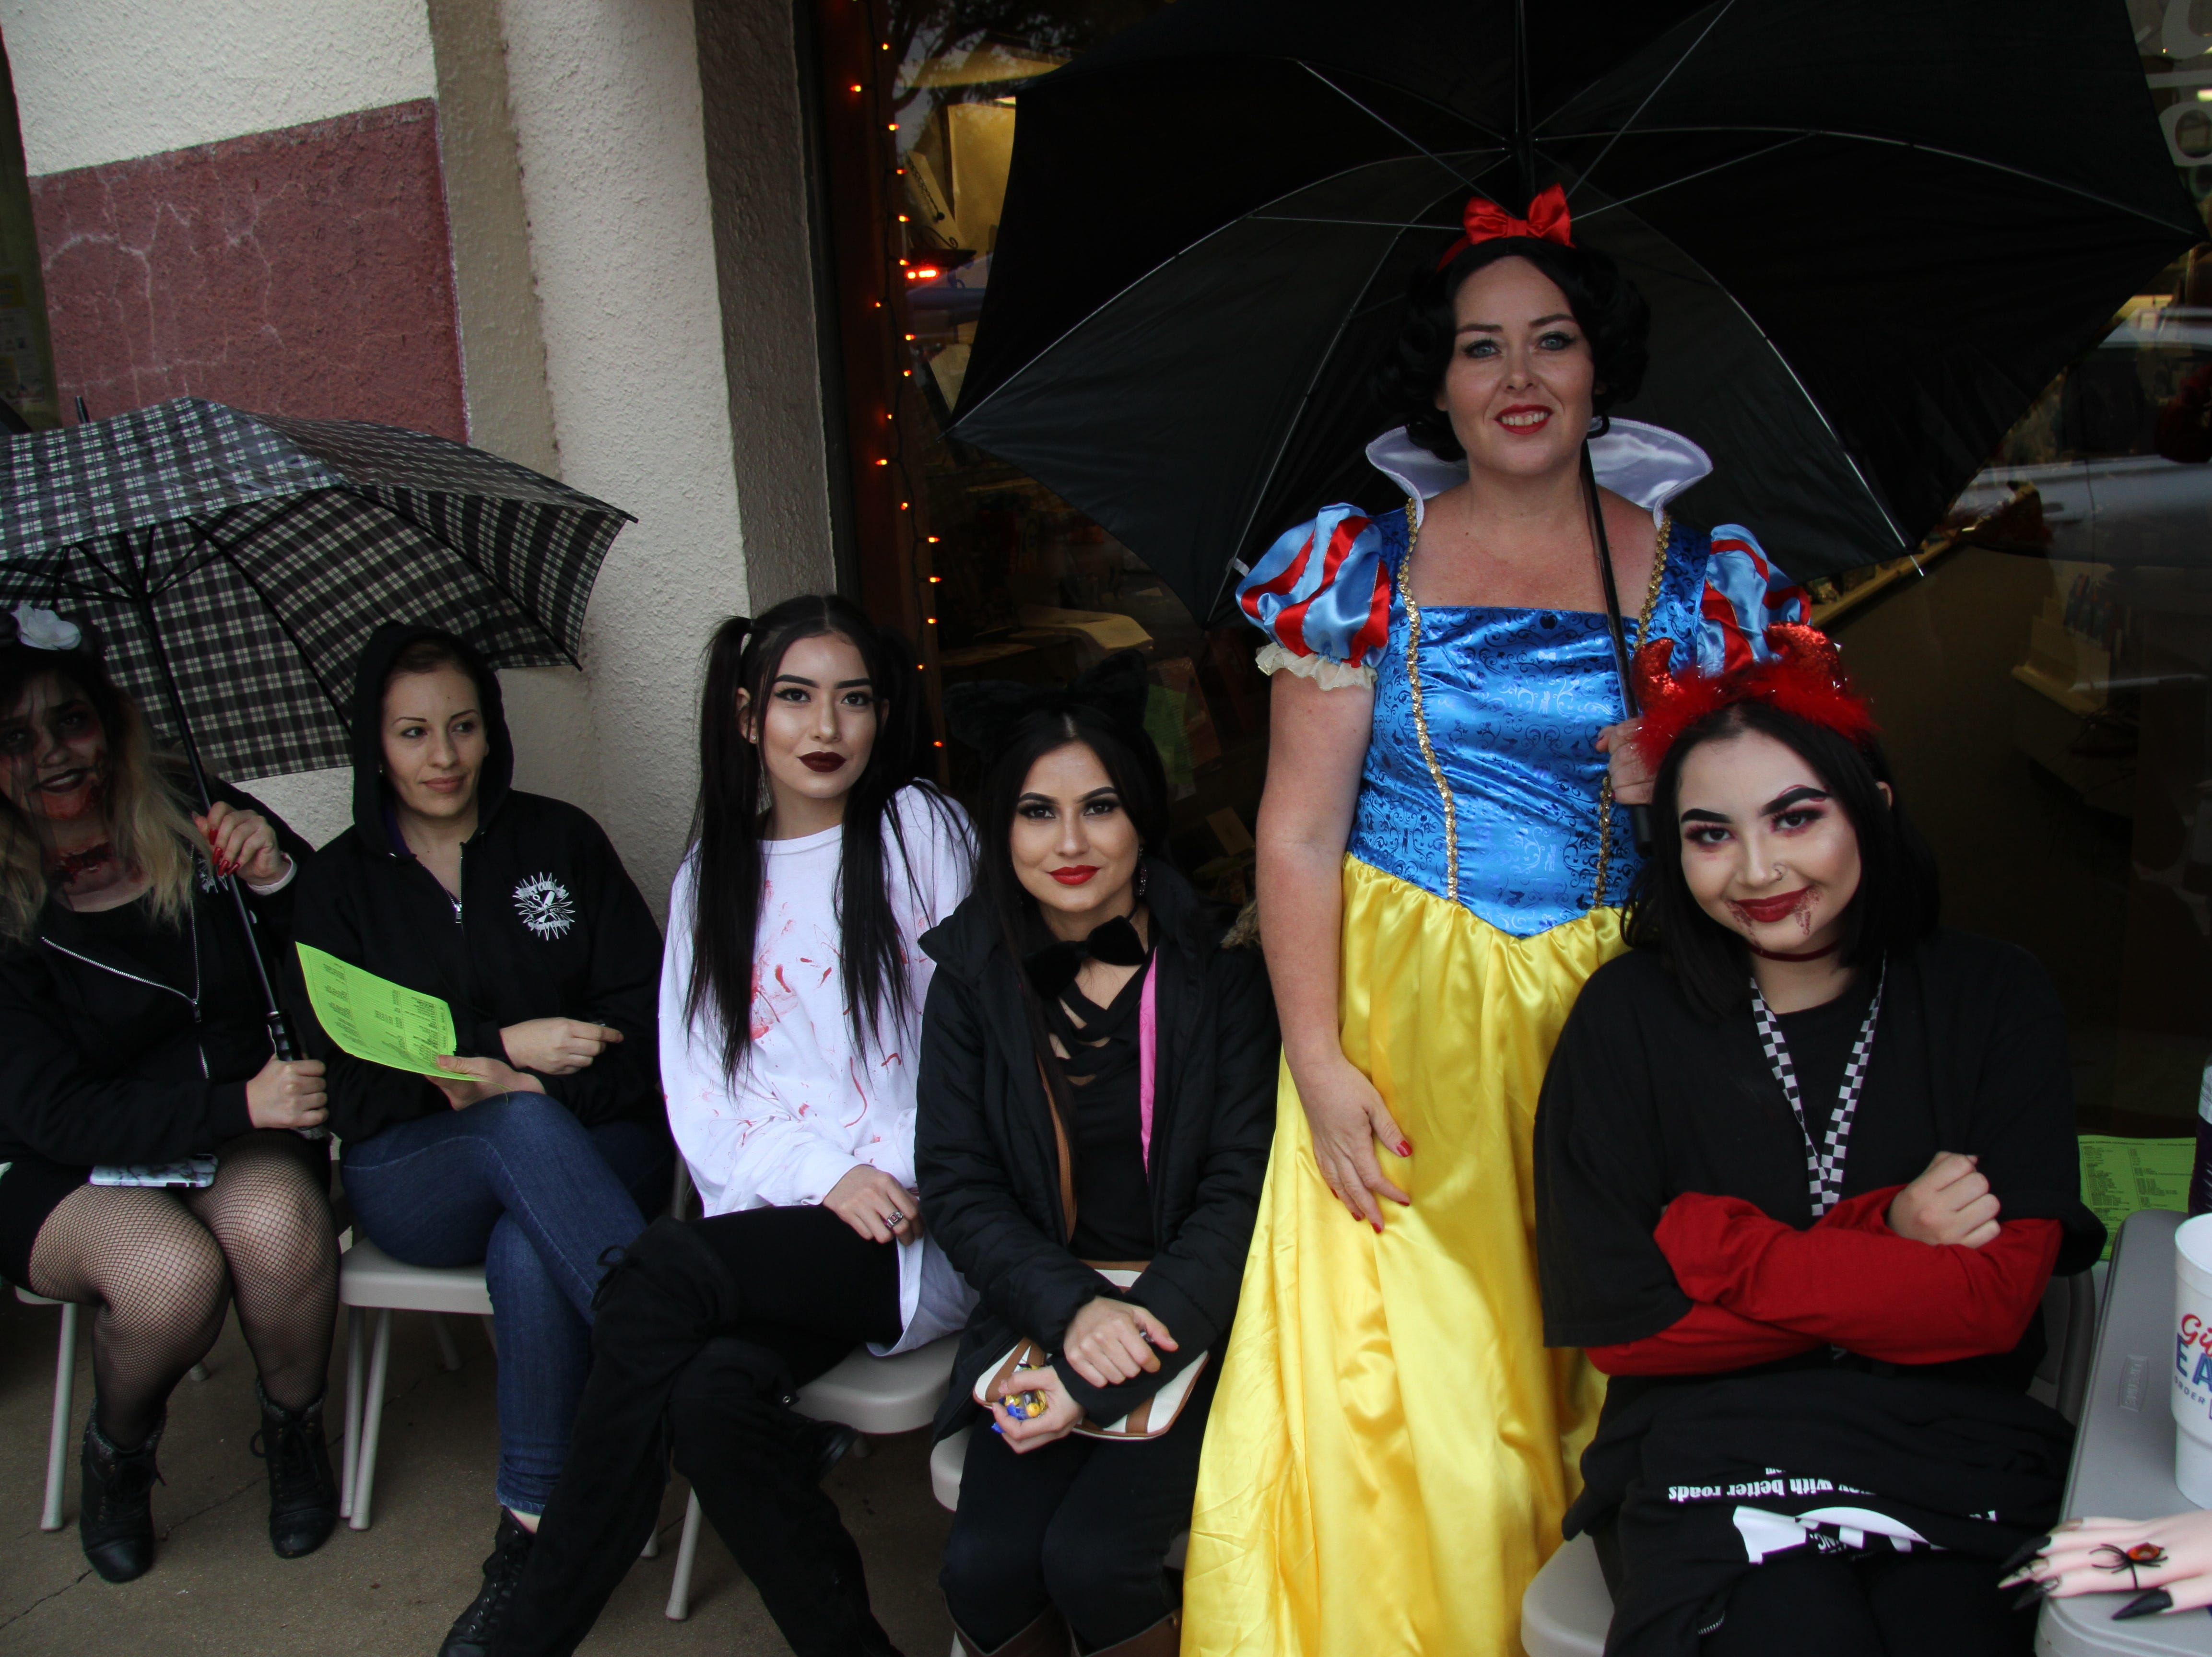 Members of The Beauty College of Eddy County brave the rainy Halloween weather during MainStreet's Fall Festival.